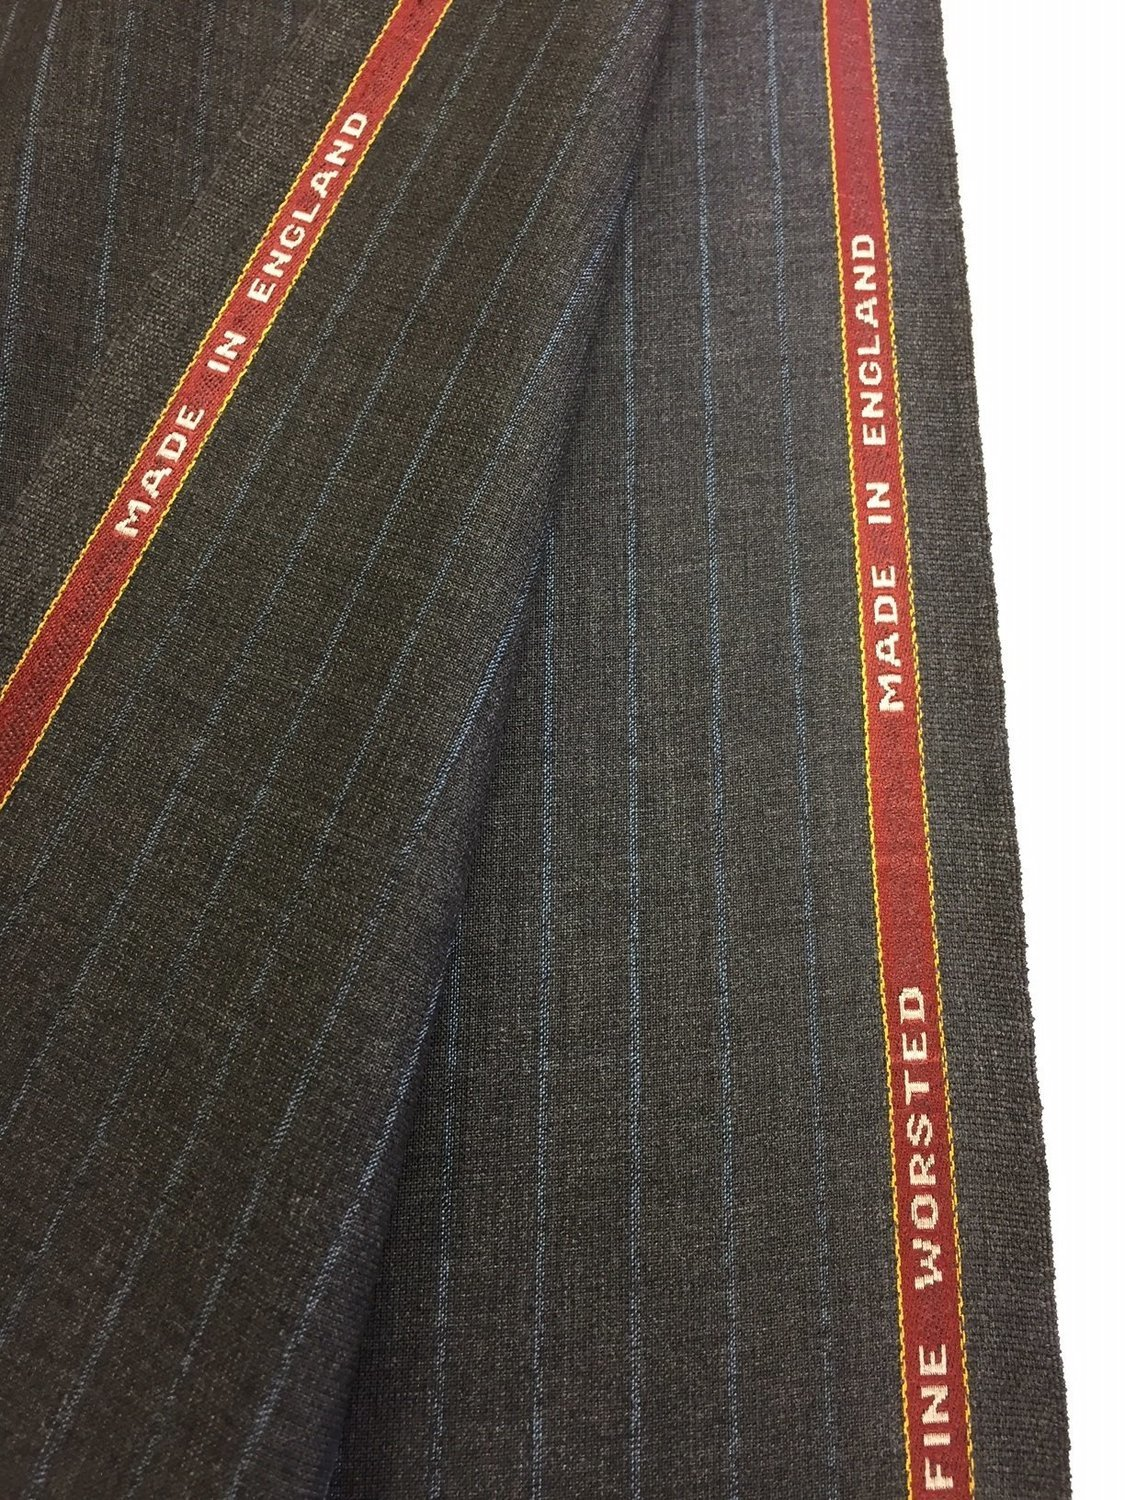 MINOVA Grey Striped Superfine Worsted Wool Suit Fabric Made In England